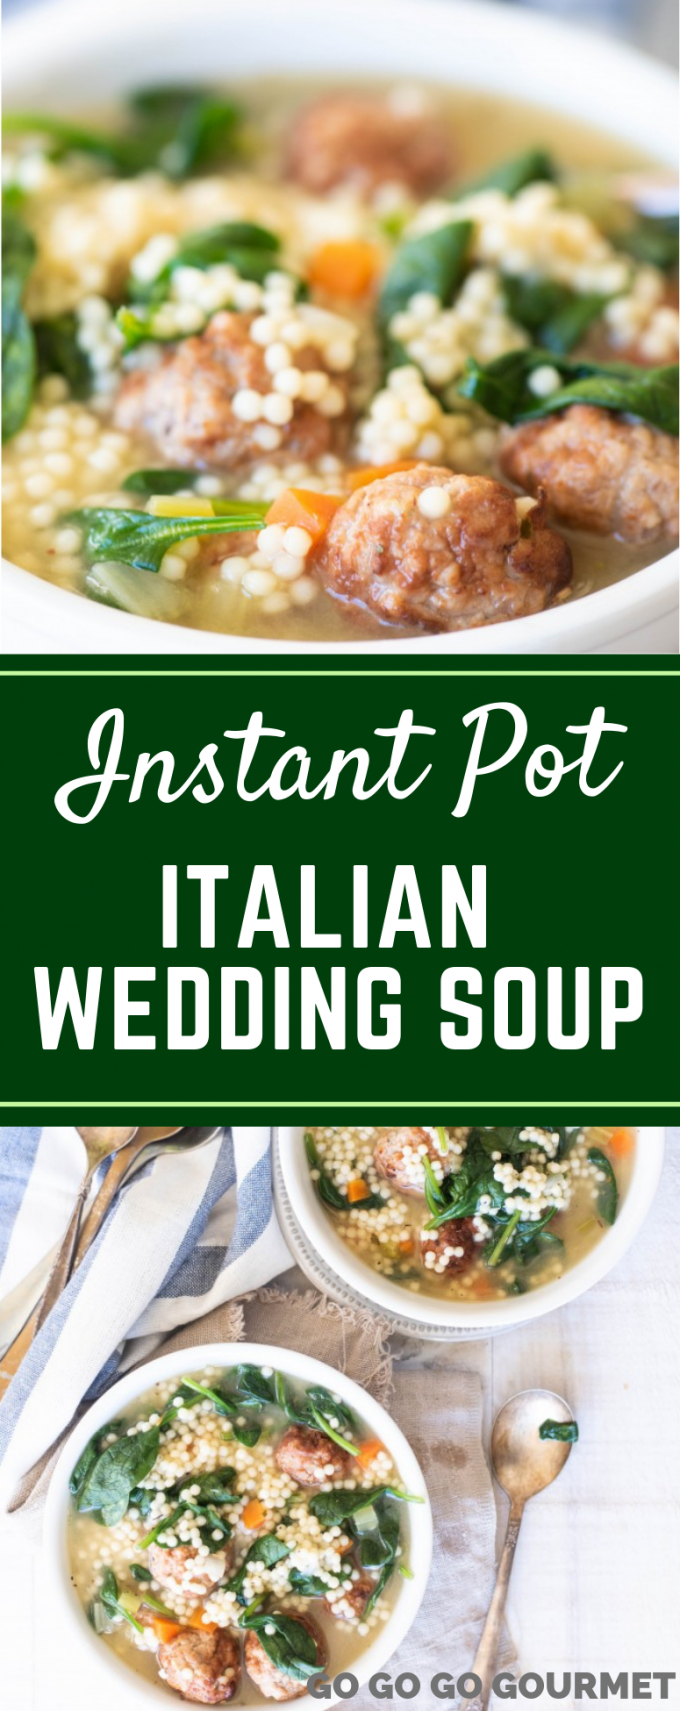 This Instant Pot Italian Wedding Soup is one of the best soup recipes! Made super easy with frozen meatballs, it's a great way to get dinner on the table fast! #gogogogourmet #instantpotitalianweddingsoup #instantpotsouprecipes #easyinstantpotrecipes